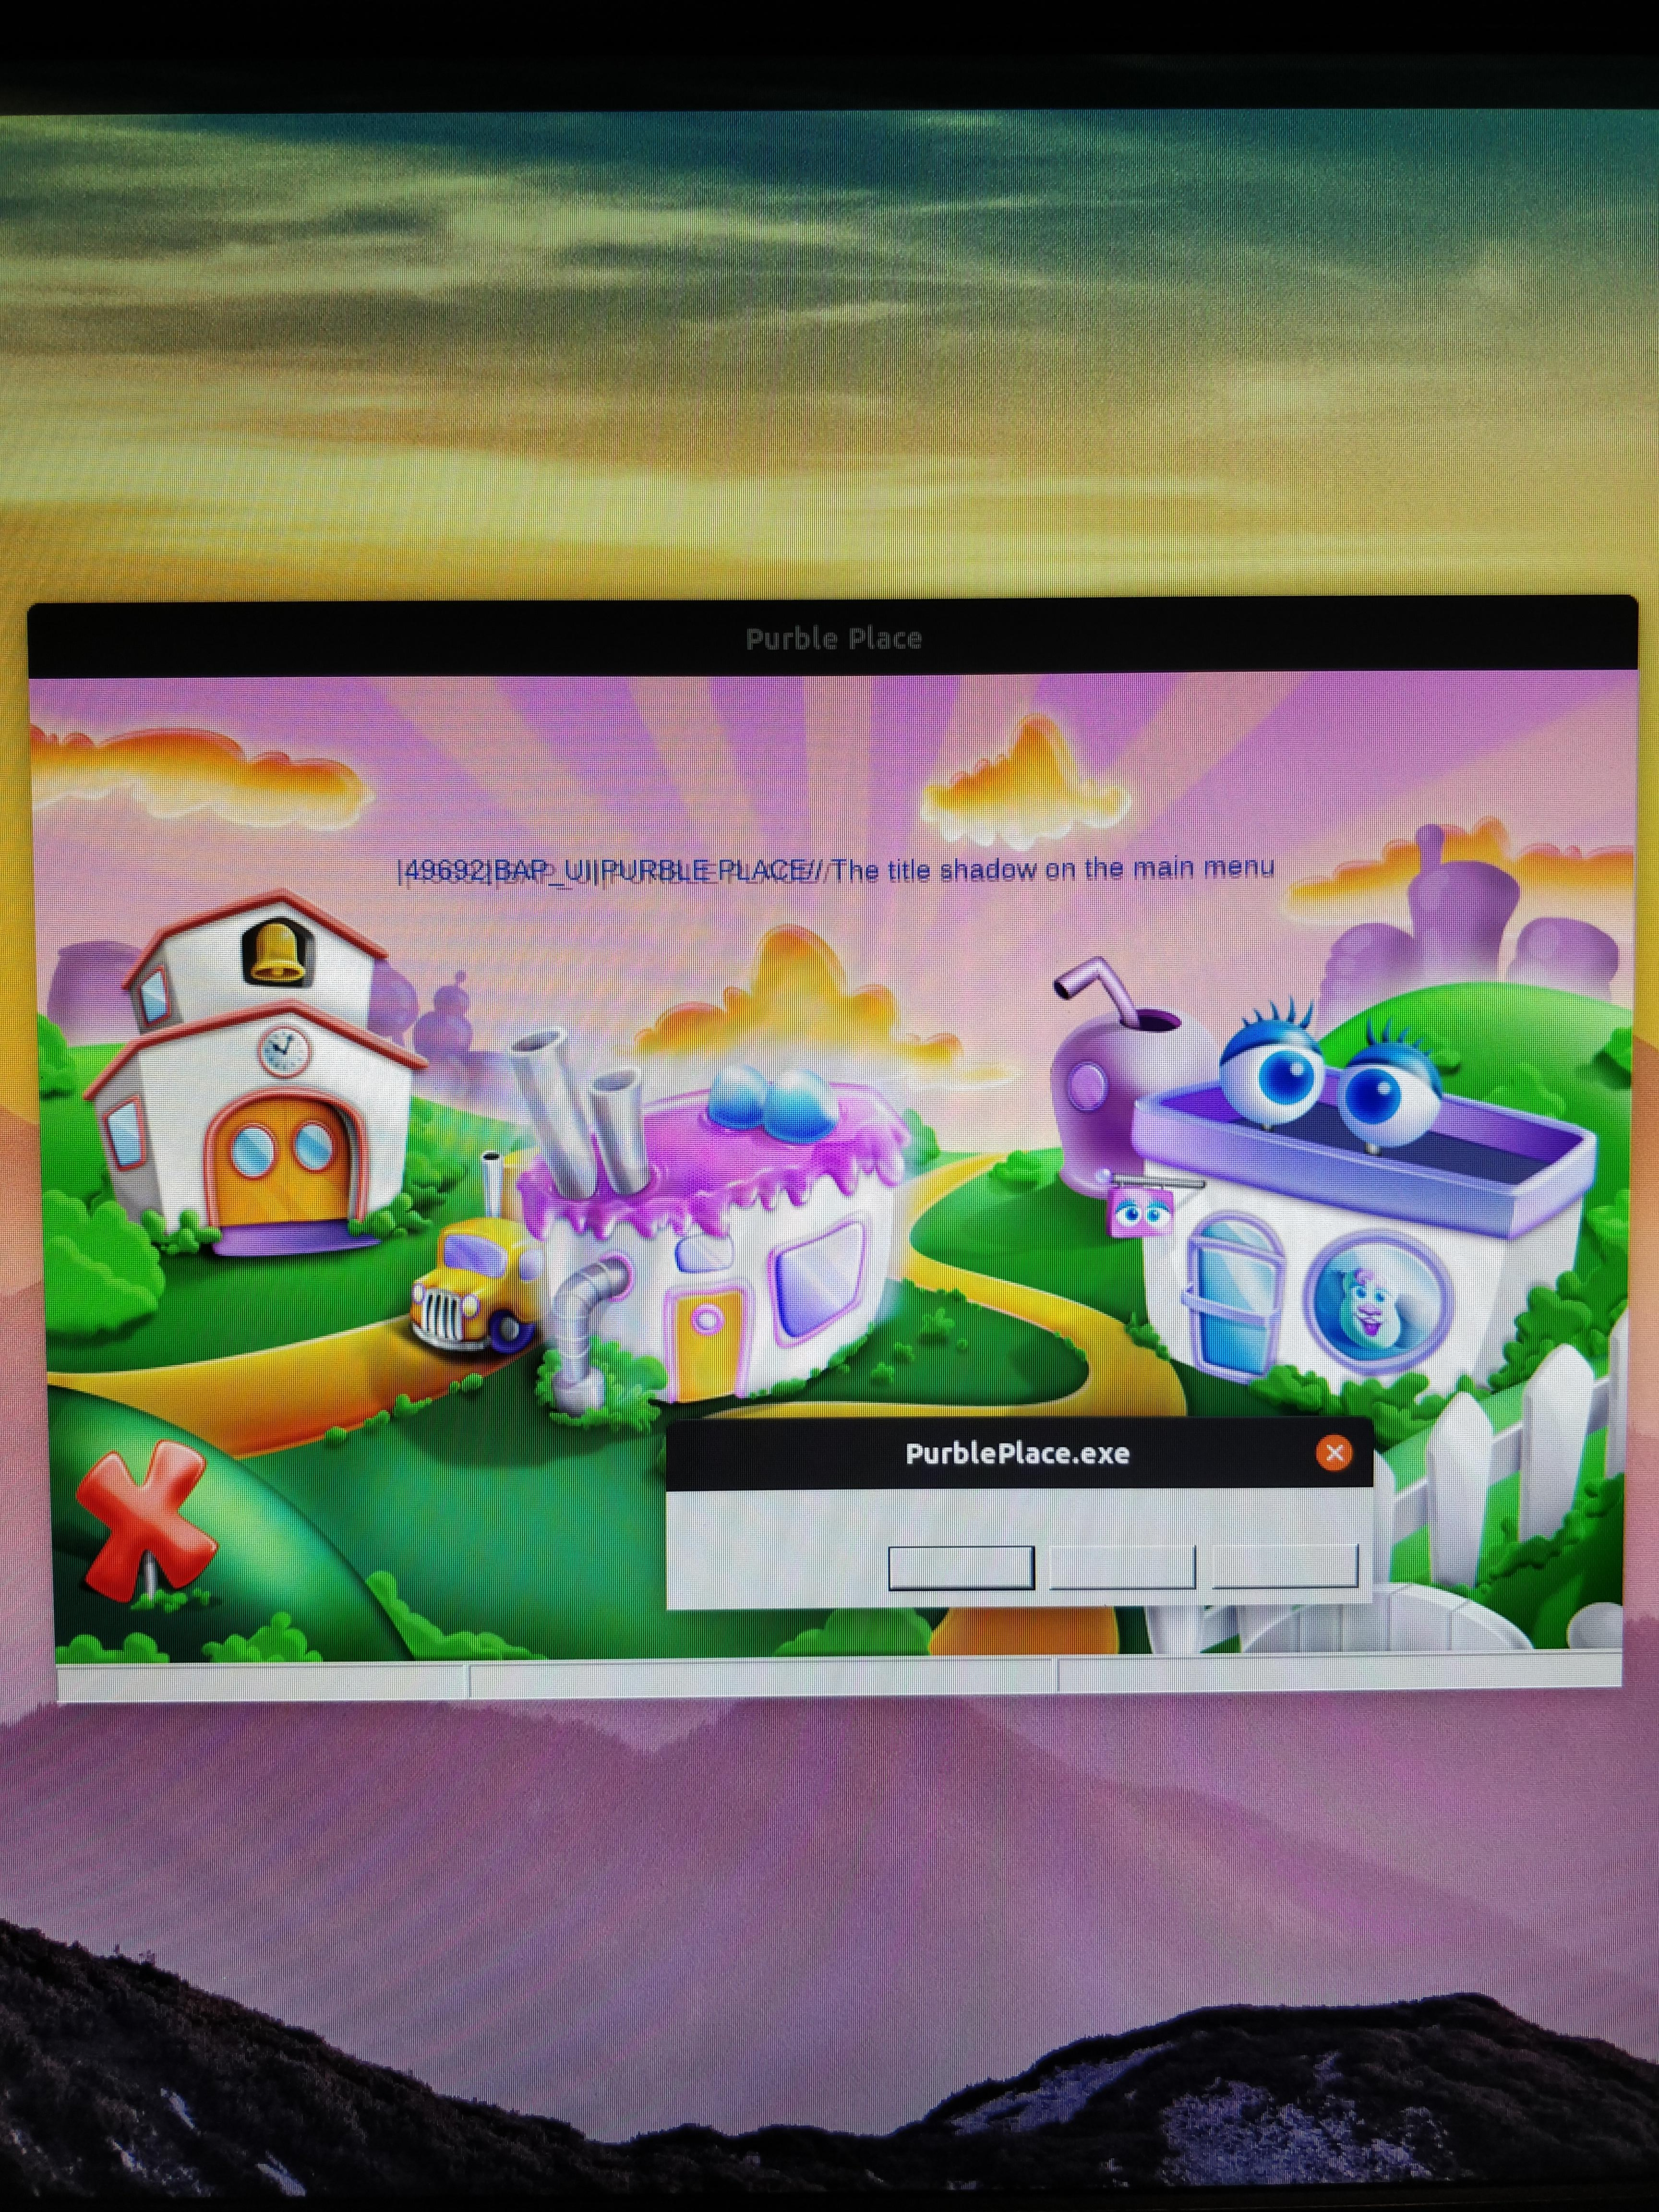 Purble Place : purble, place, Purble, Place, Under, Remember, Youngster, Softwaregore